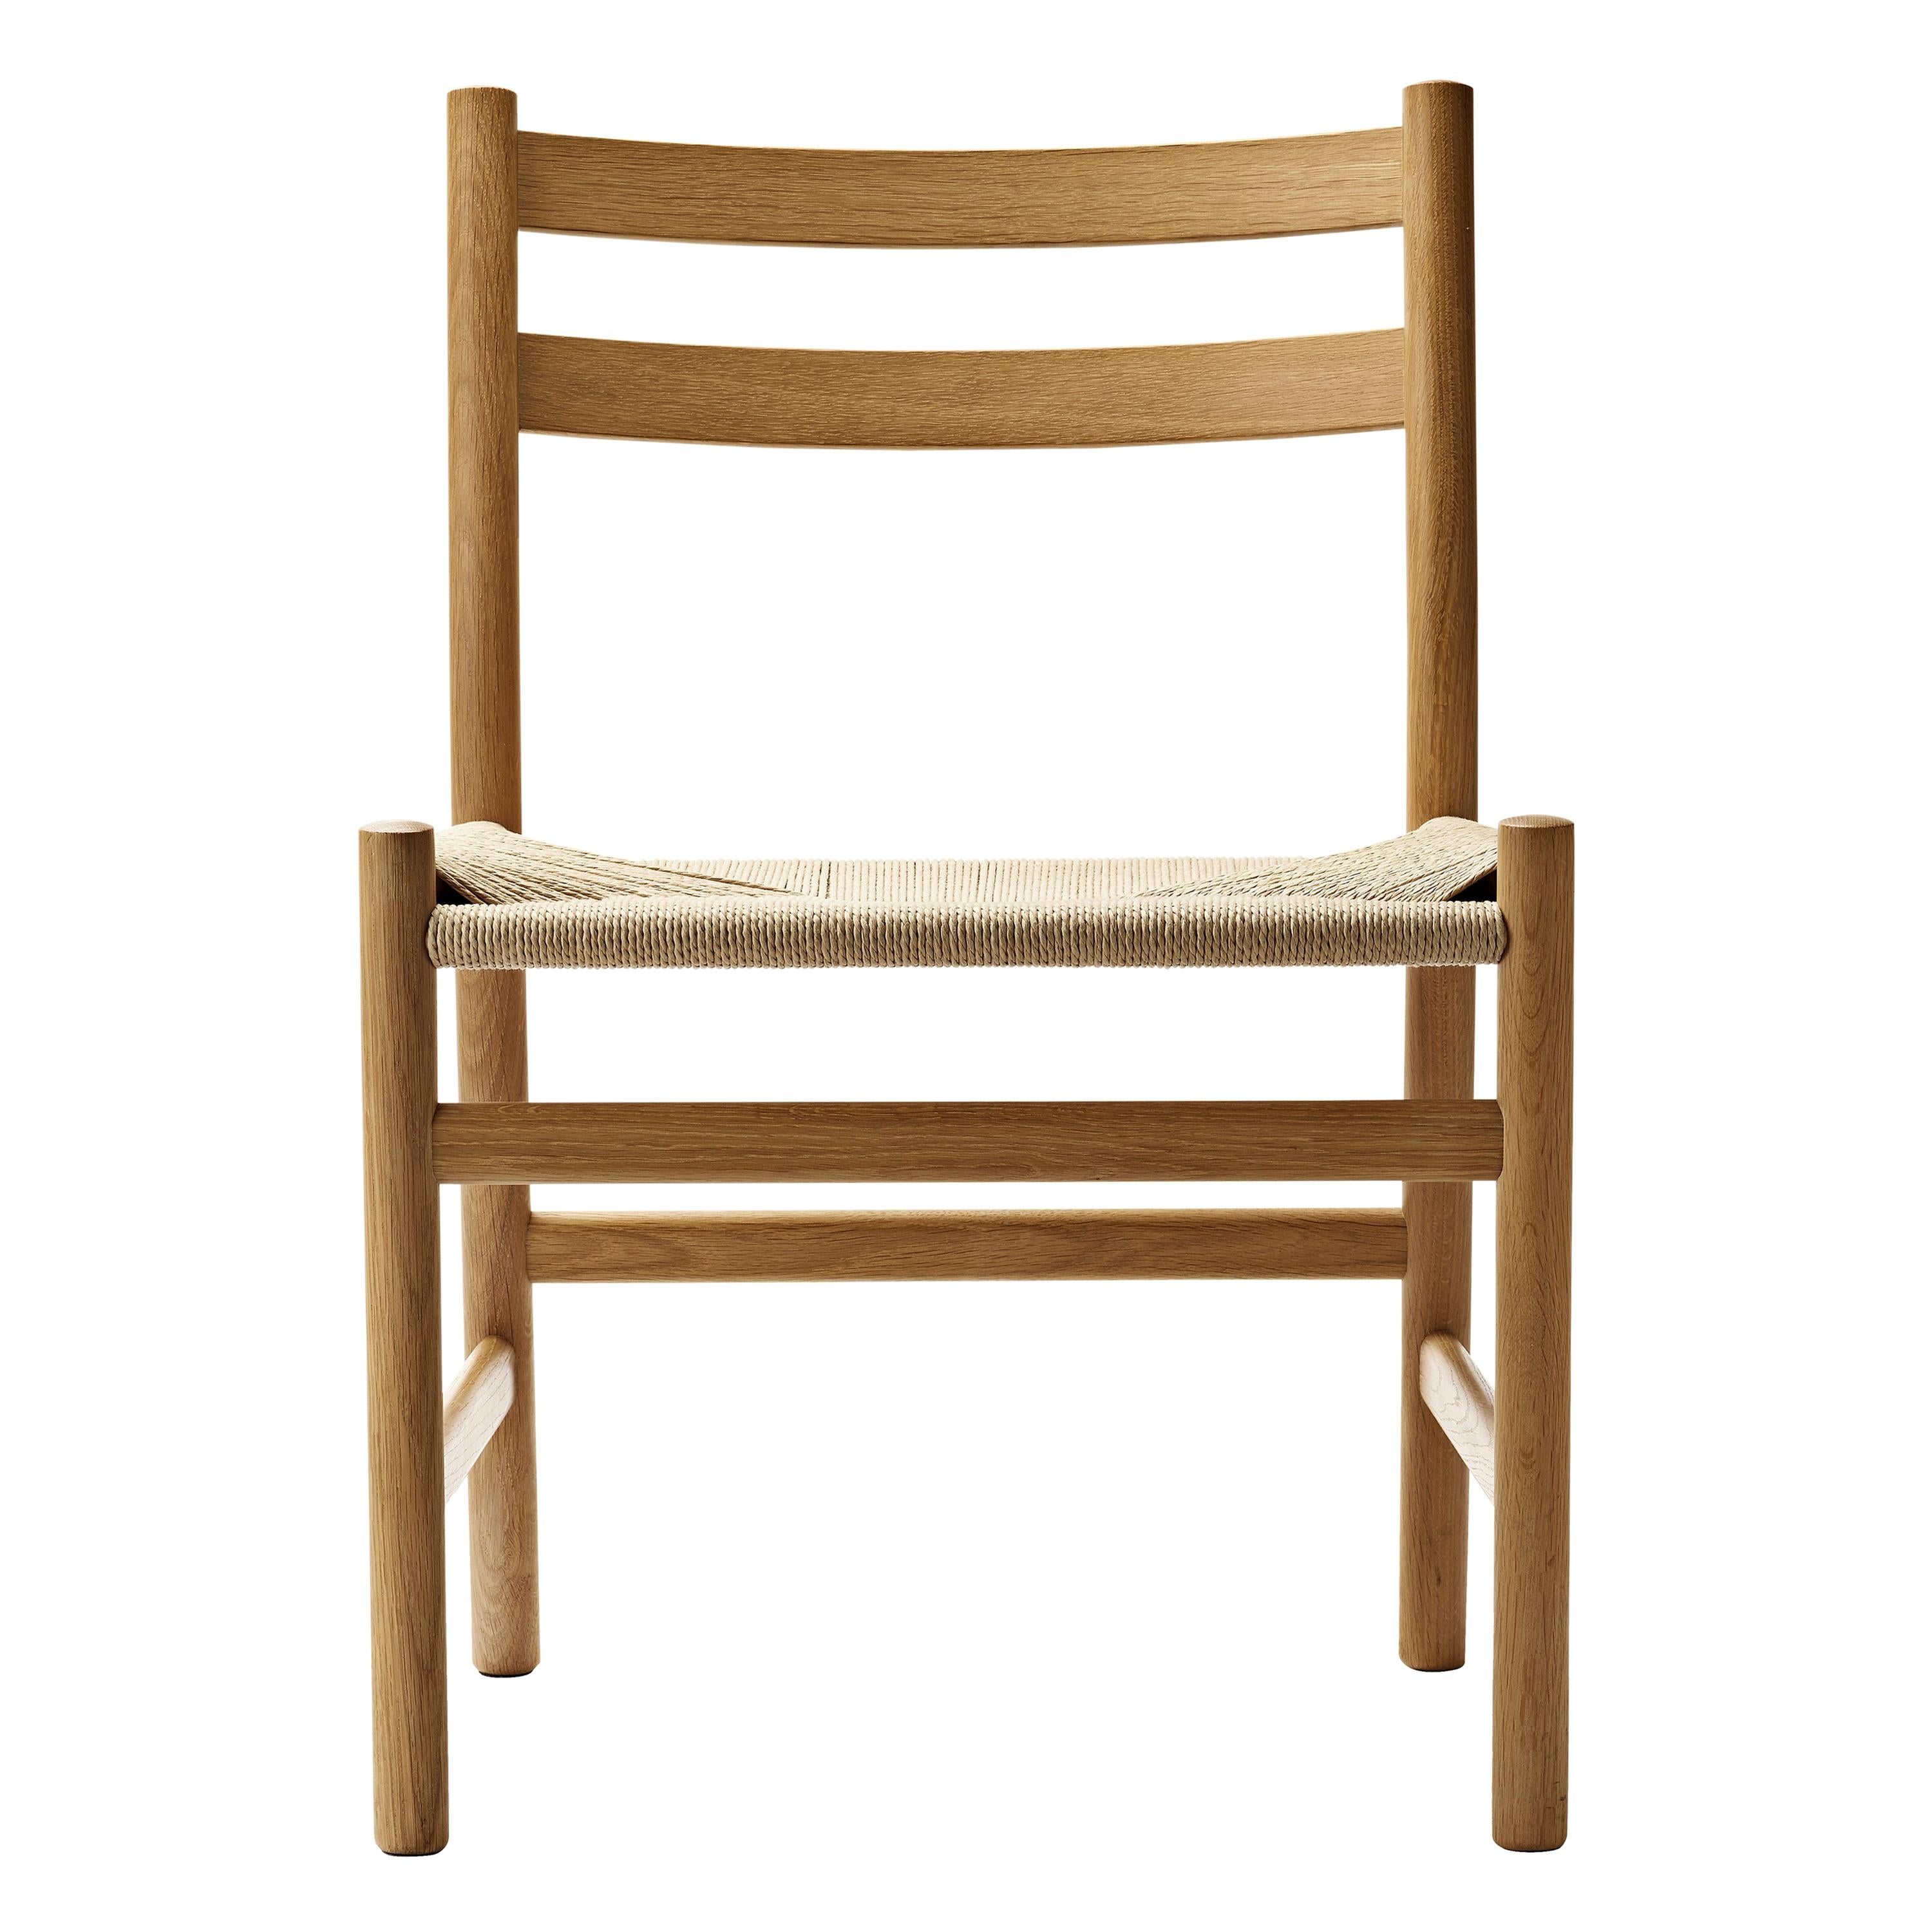 CH47 Dining Chair in Wood Finishes with Natural Papercord Seat by Hans J. Wegner